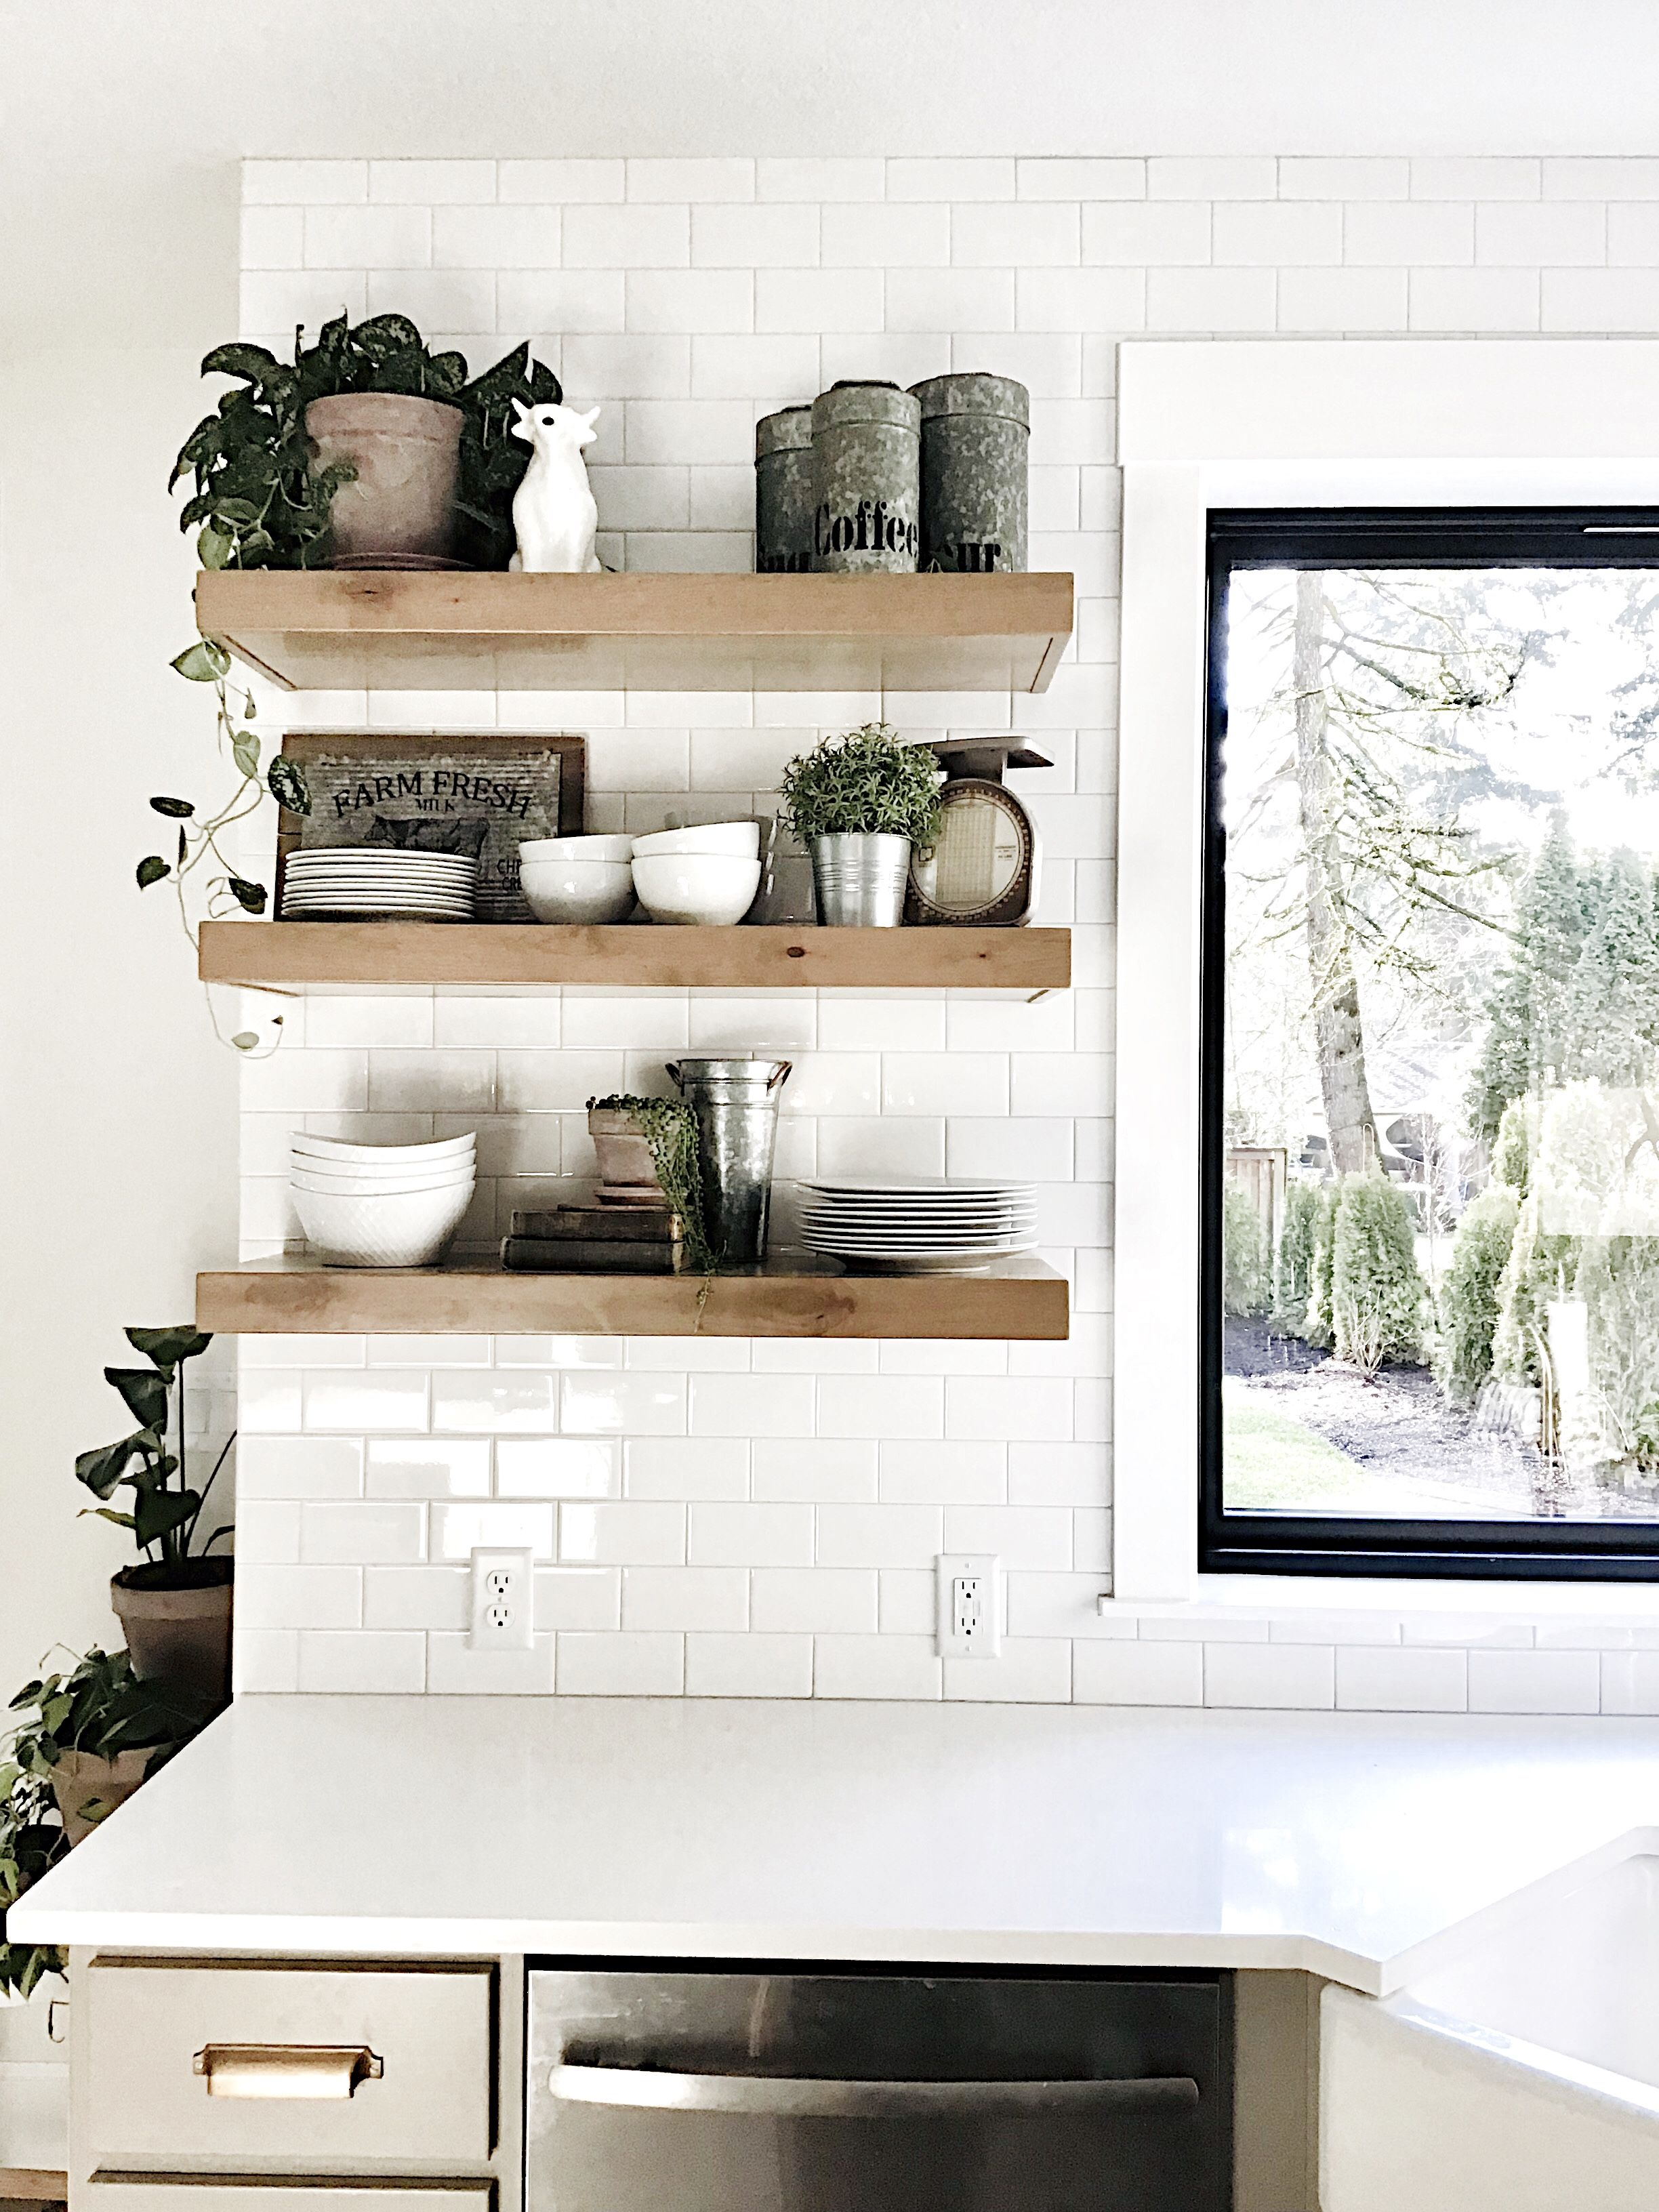 farmhouse kitchen open shelves antiques white dishes and plants some of my favorite things on farmhouse kitchen open shelves id=52740